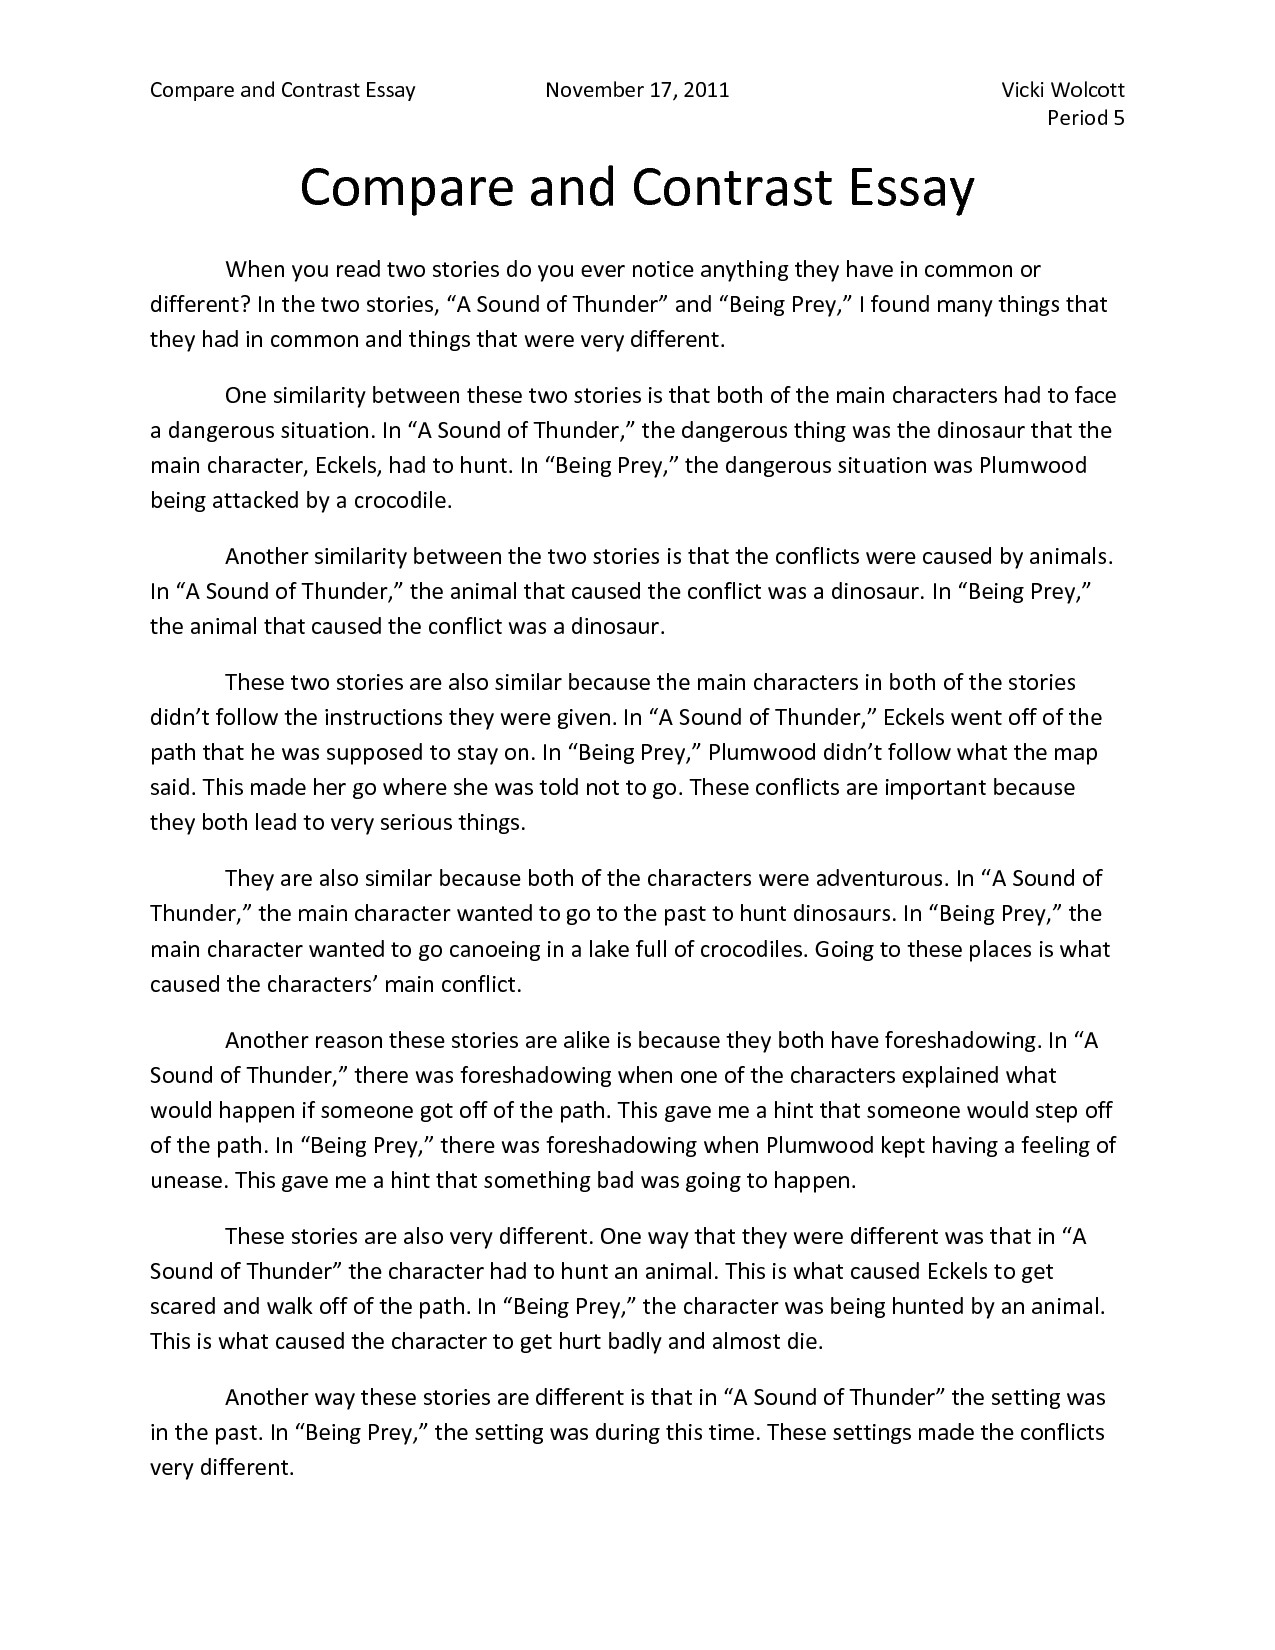 001 Example Of License Agreement Archives Tienda Biogota Co New Examples Comparison Essays Validte An Essay For Me Help Reflectiveting Ma Comparing Characters Analysis Characterization How To Astounding Write On A Paper Research Full